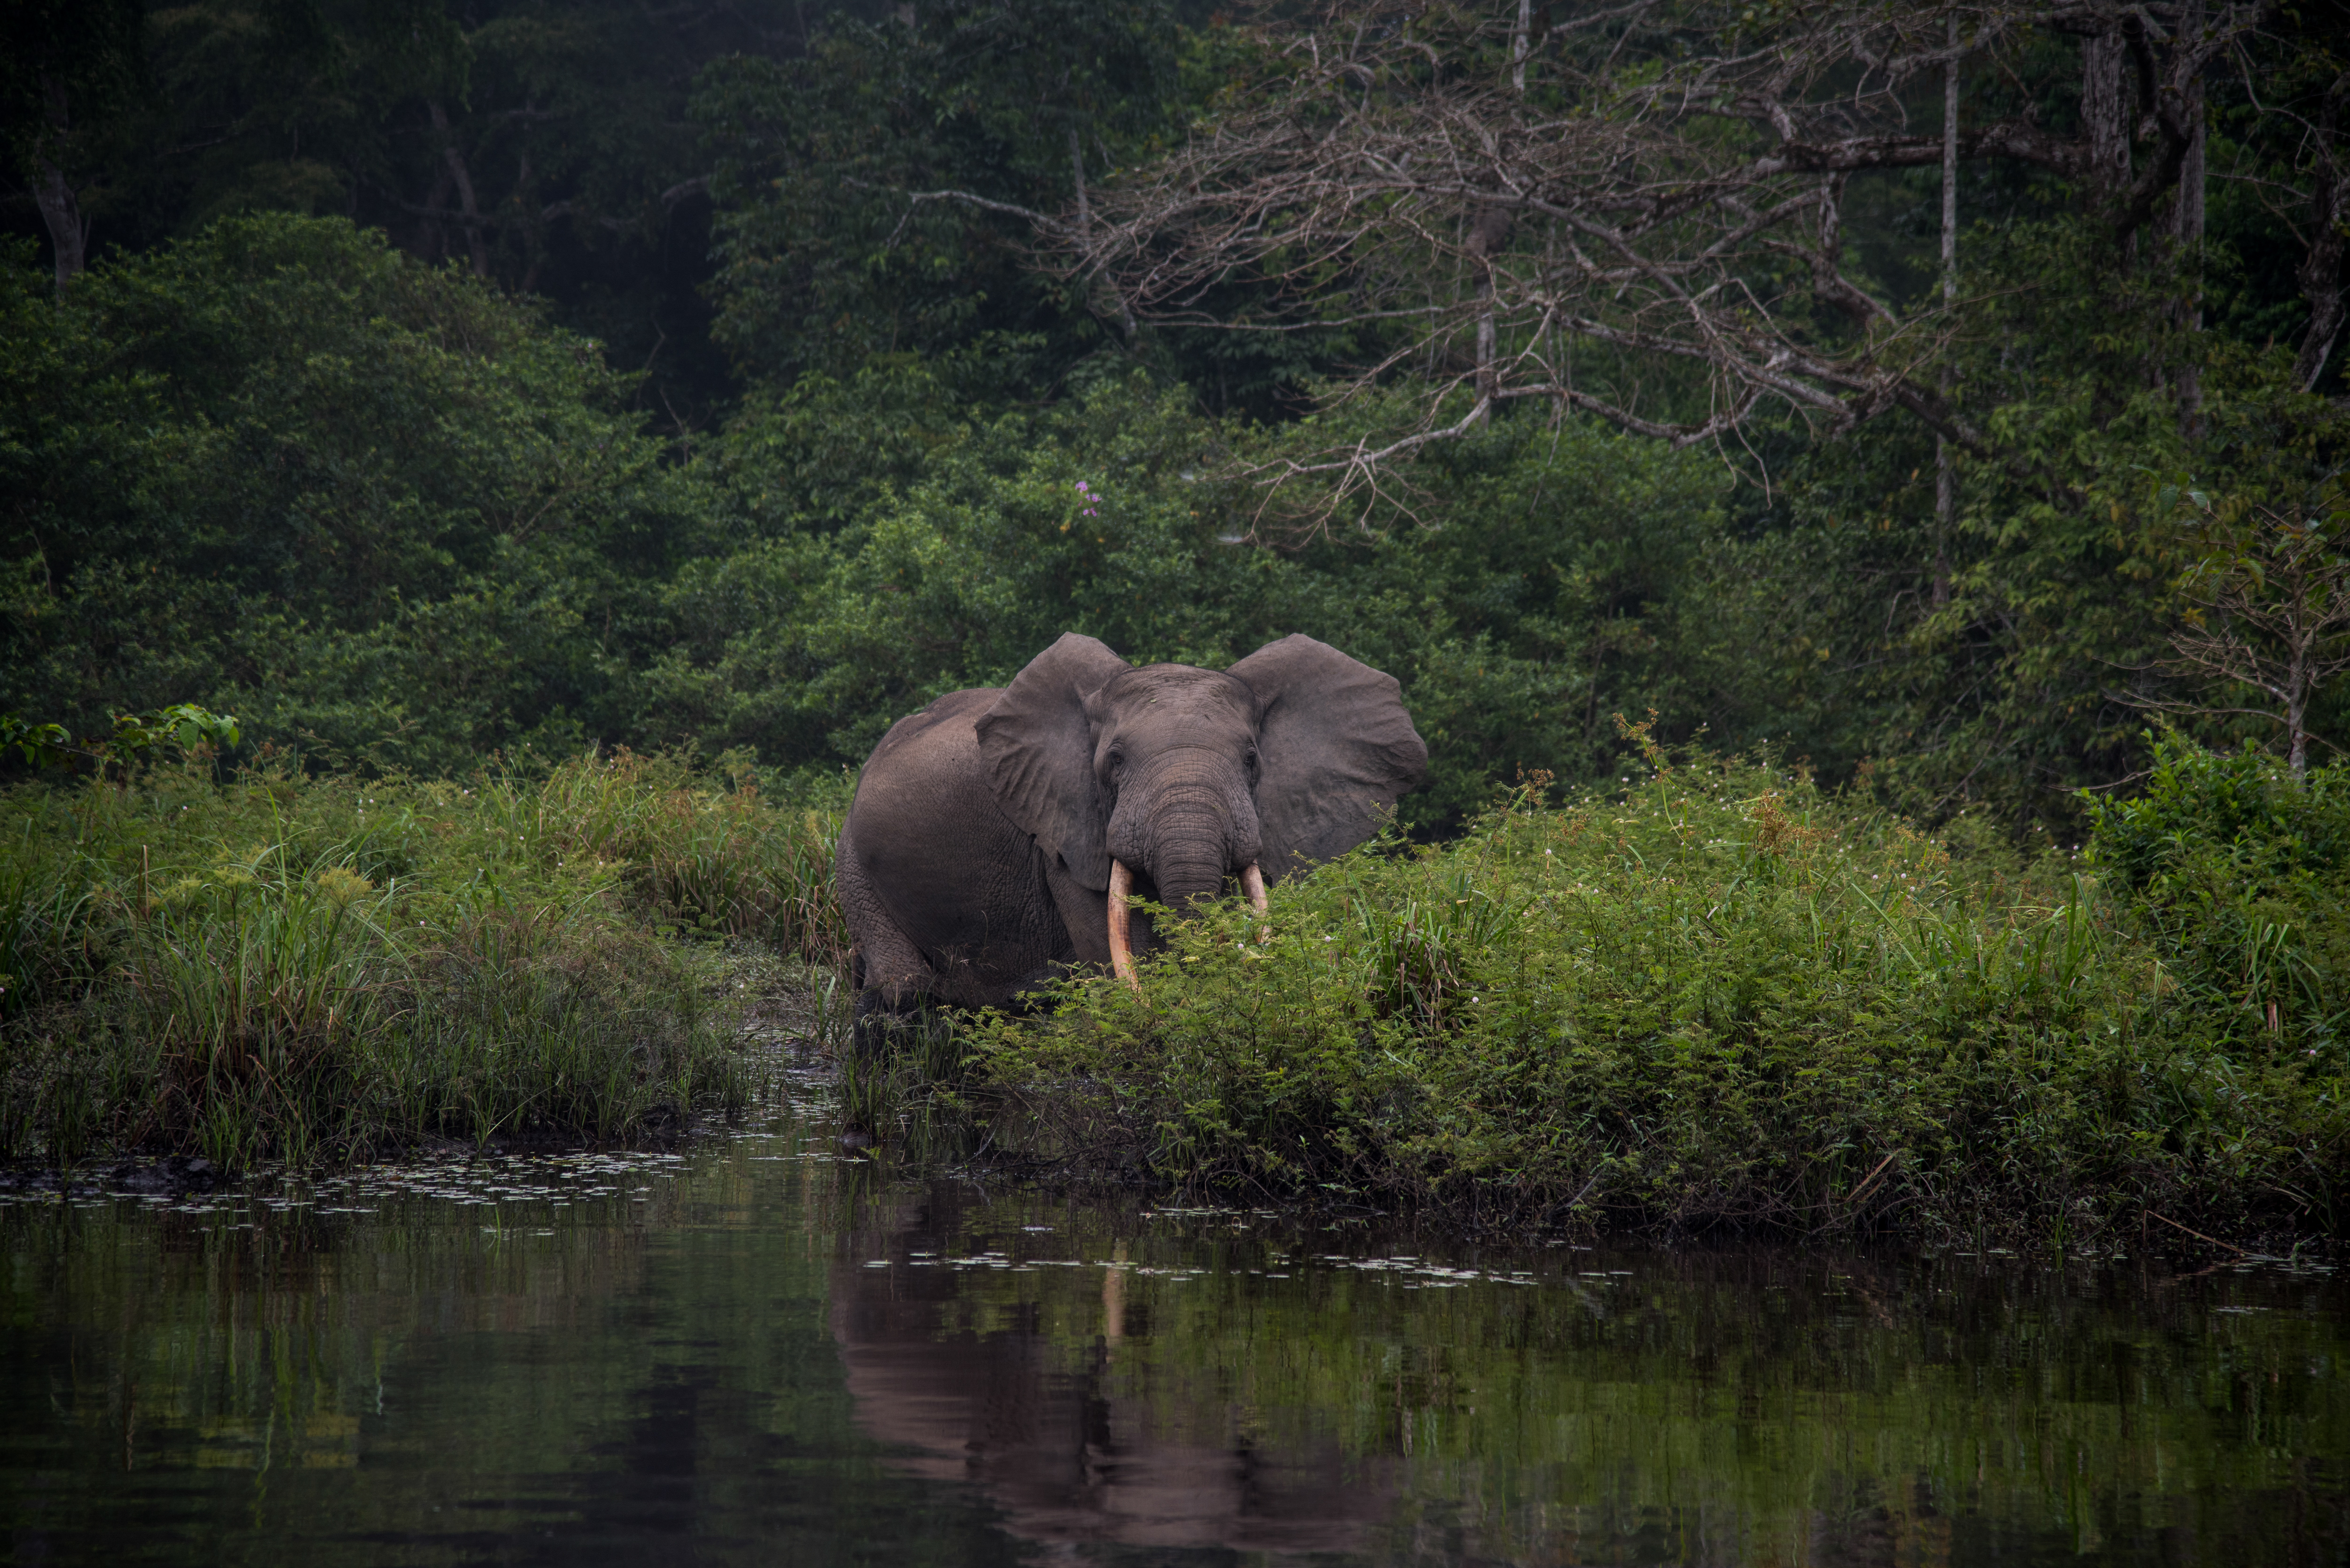 Forest elephant by the water's edge (Frank af Petersens/Save the Elephants/PA)